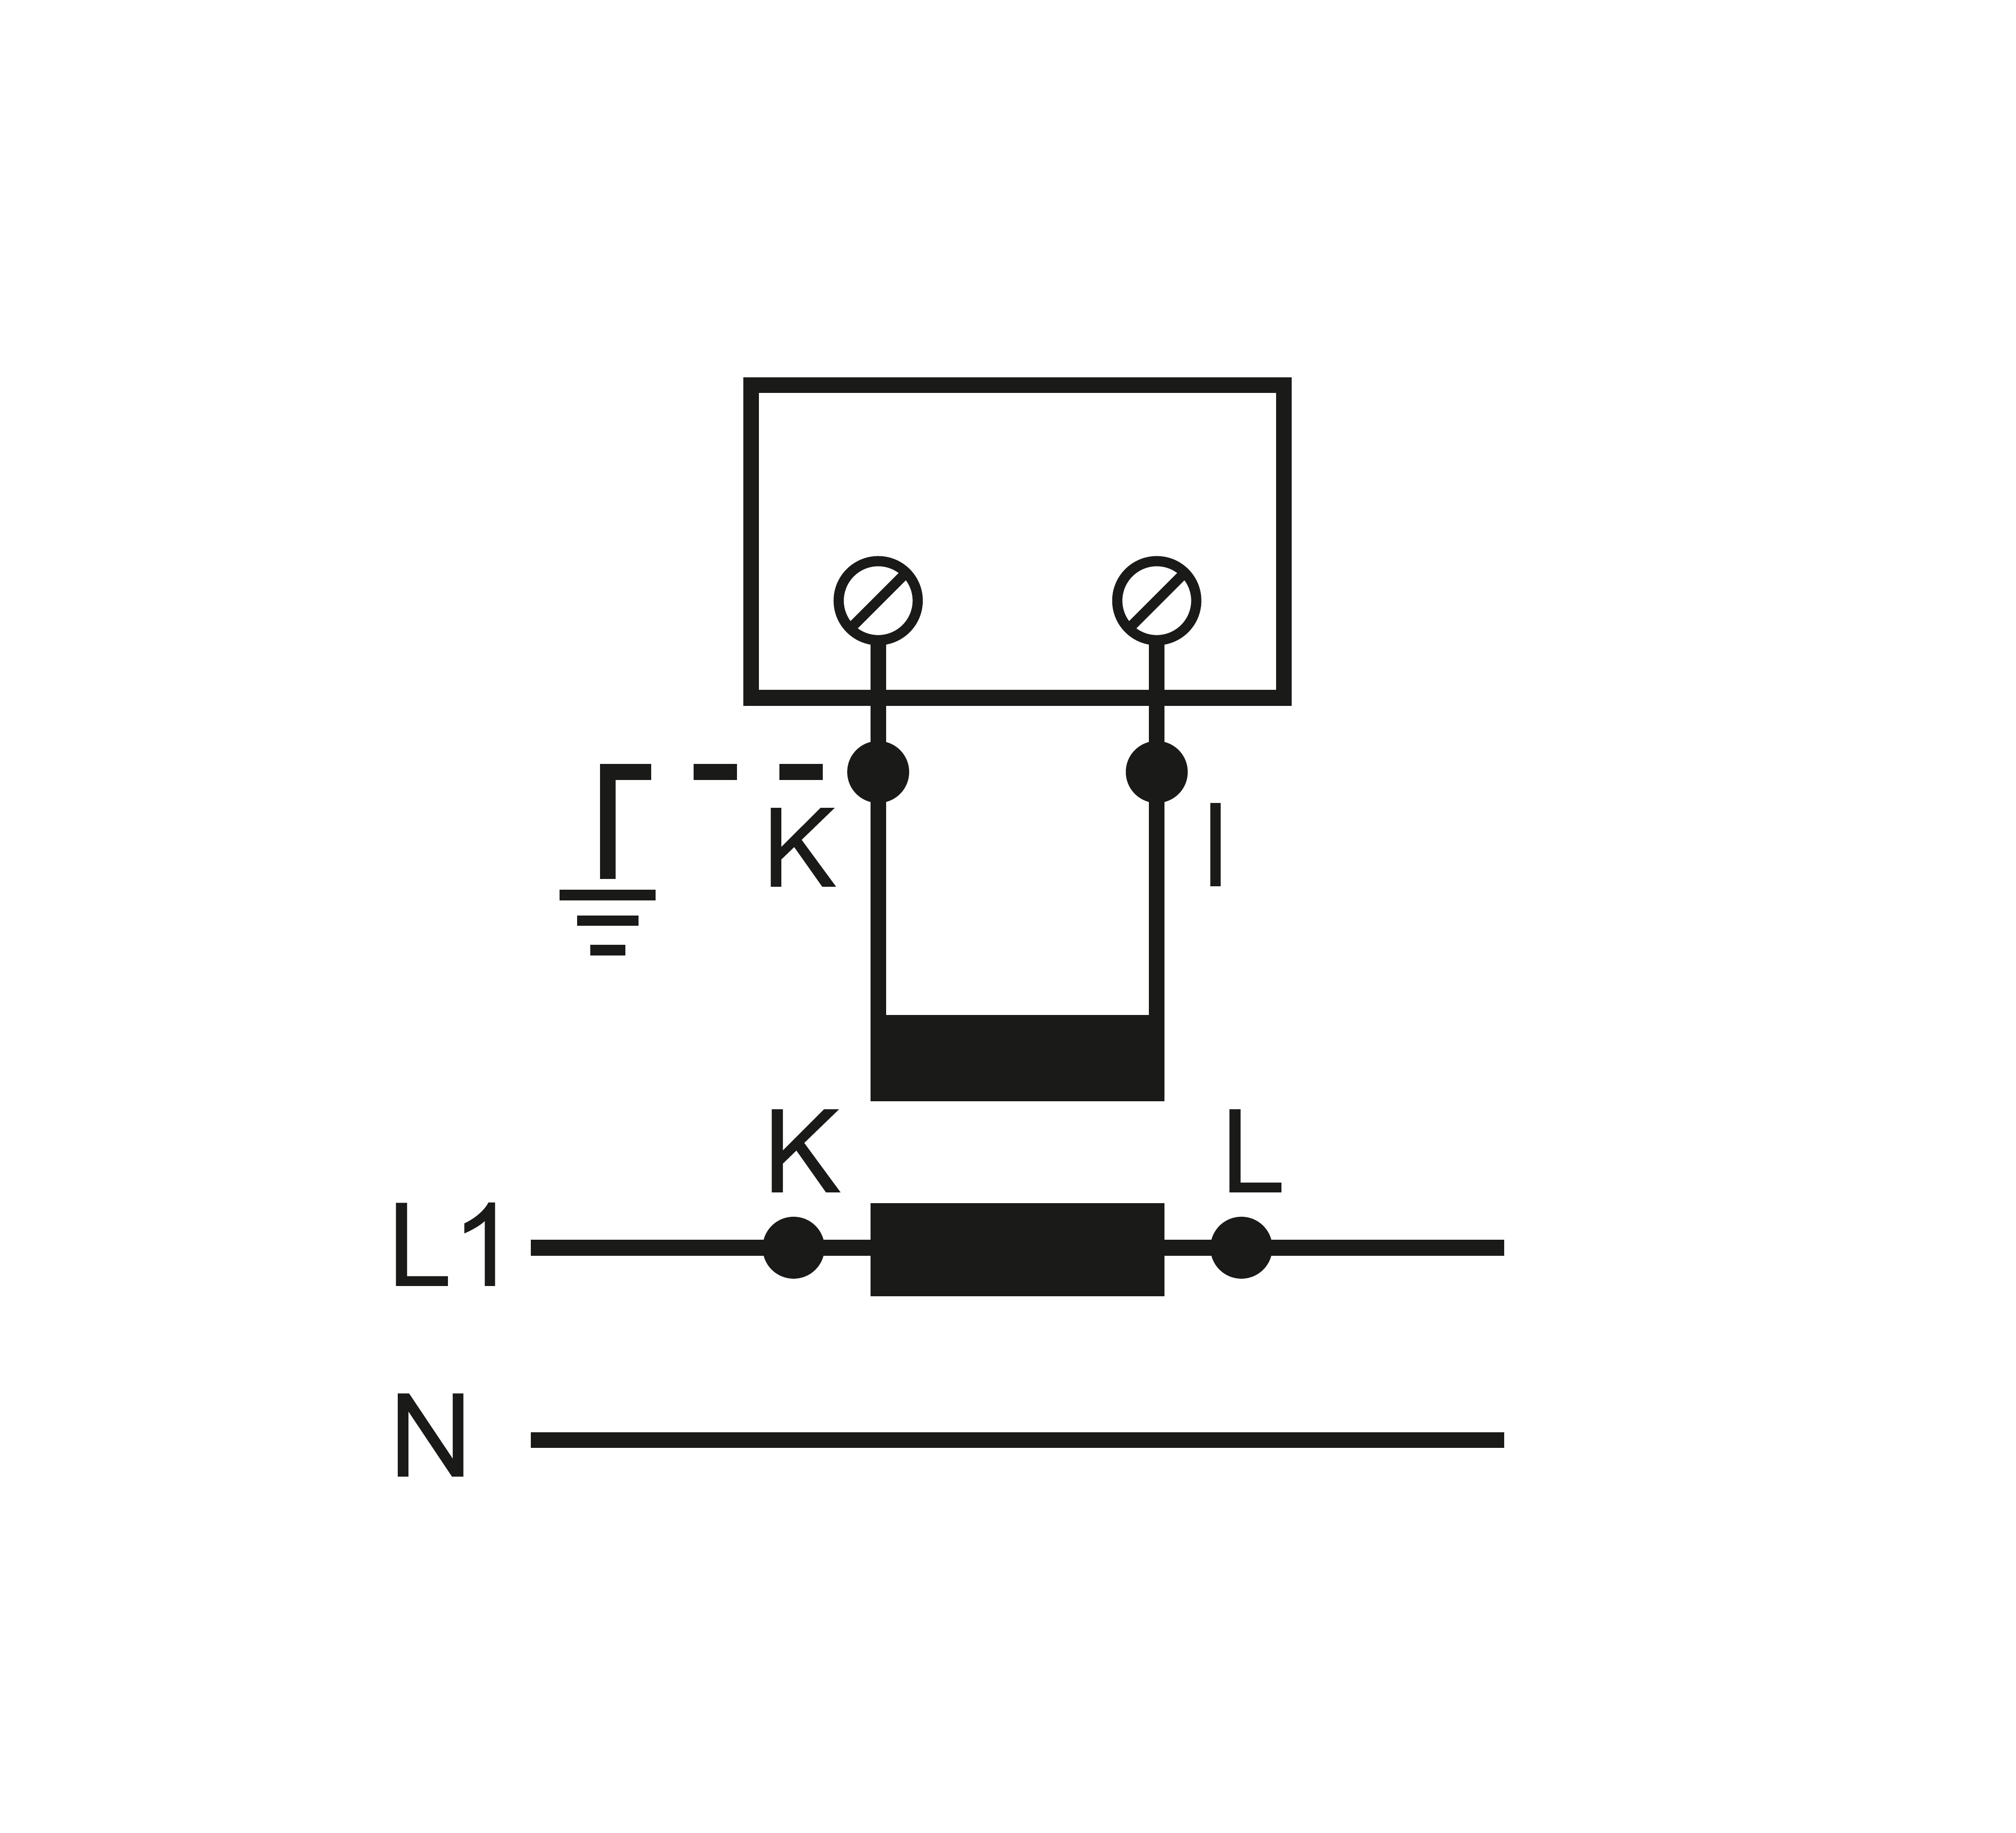 ammeter 72x72mm x 5a ct connection out scale plate emall wiring diagram